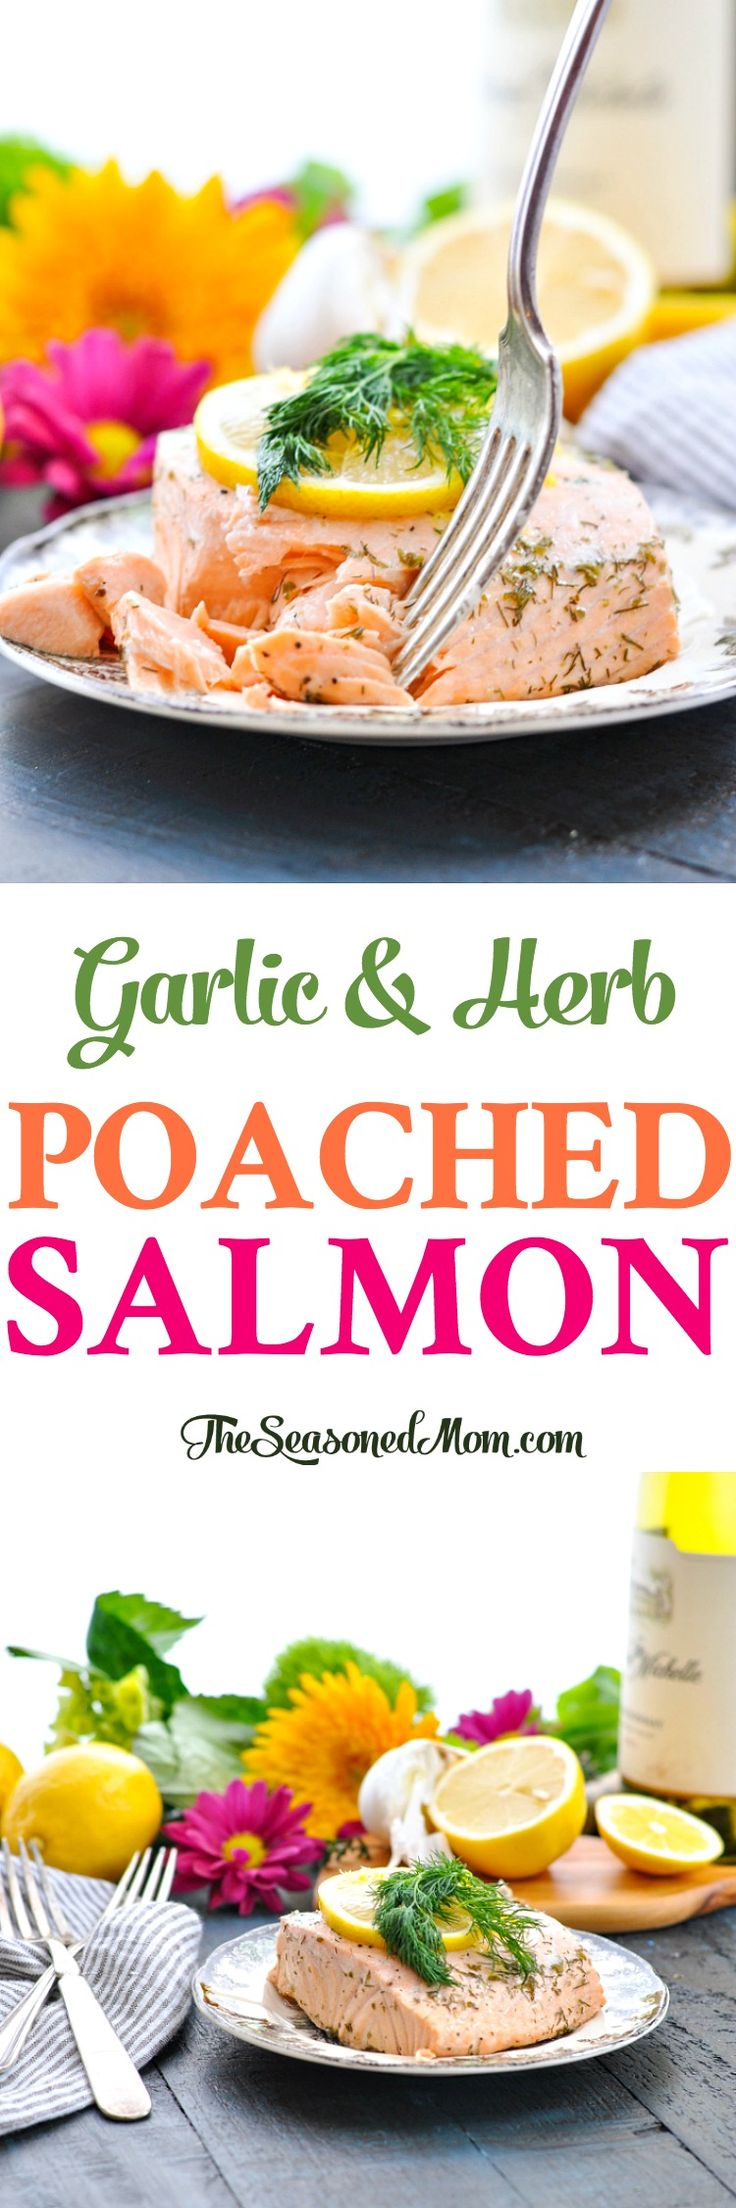 This Garlic and Herb Poached Salmon is a healthy dinner that comes together in a matter of minutes! Fish | Seafood Recipes | Salmon Recipes | Healthy Dinner Recipes #salmon #seafood #fish #dinner #healthyfood #realfood #TheSeasonedMom